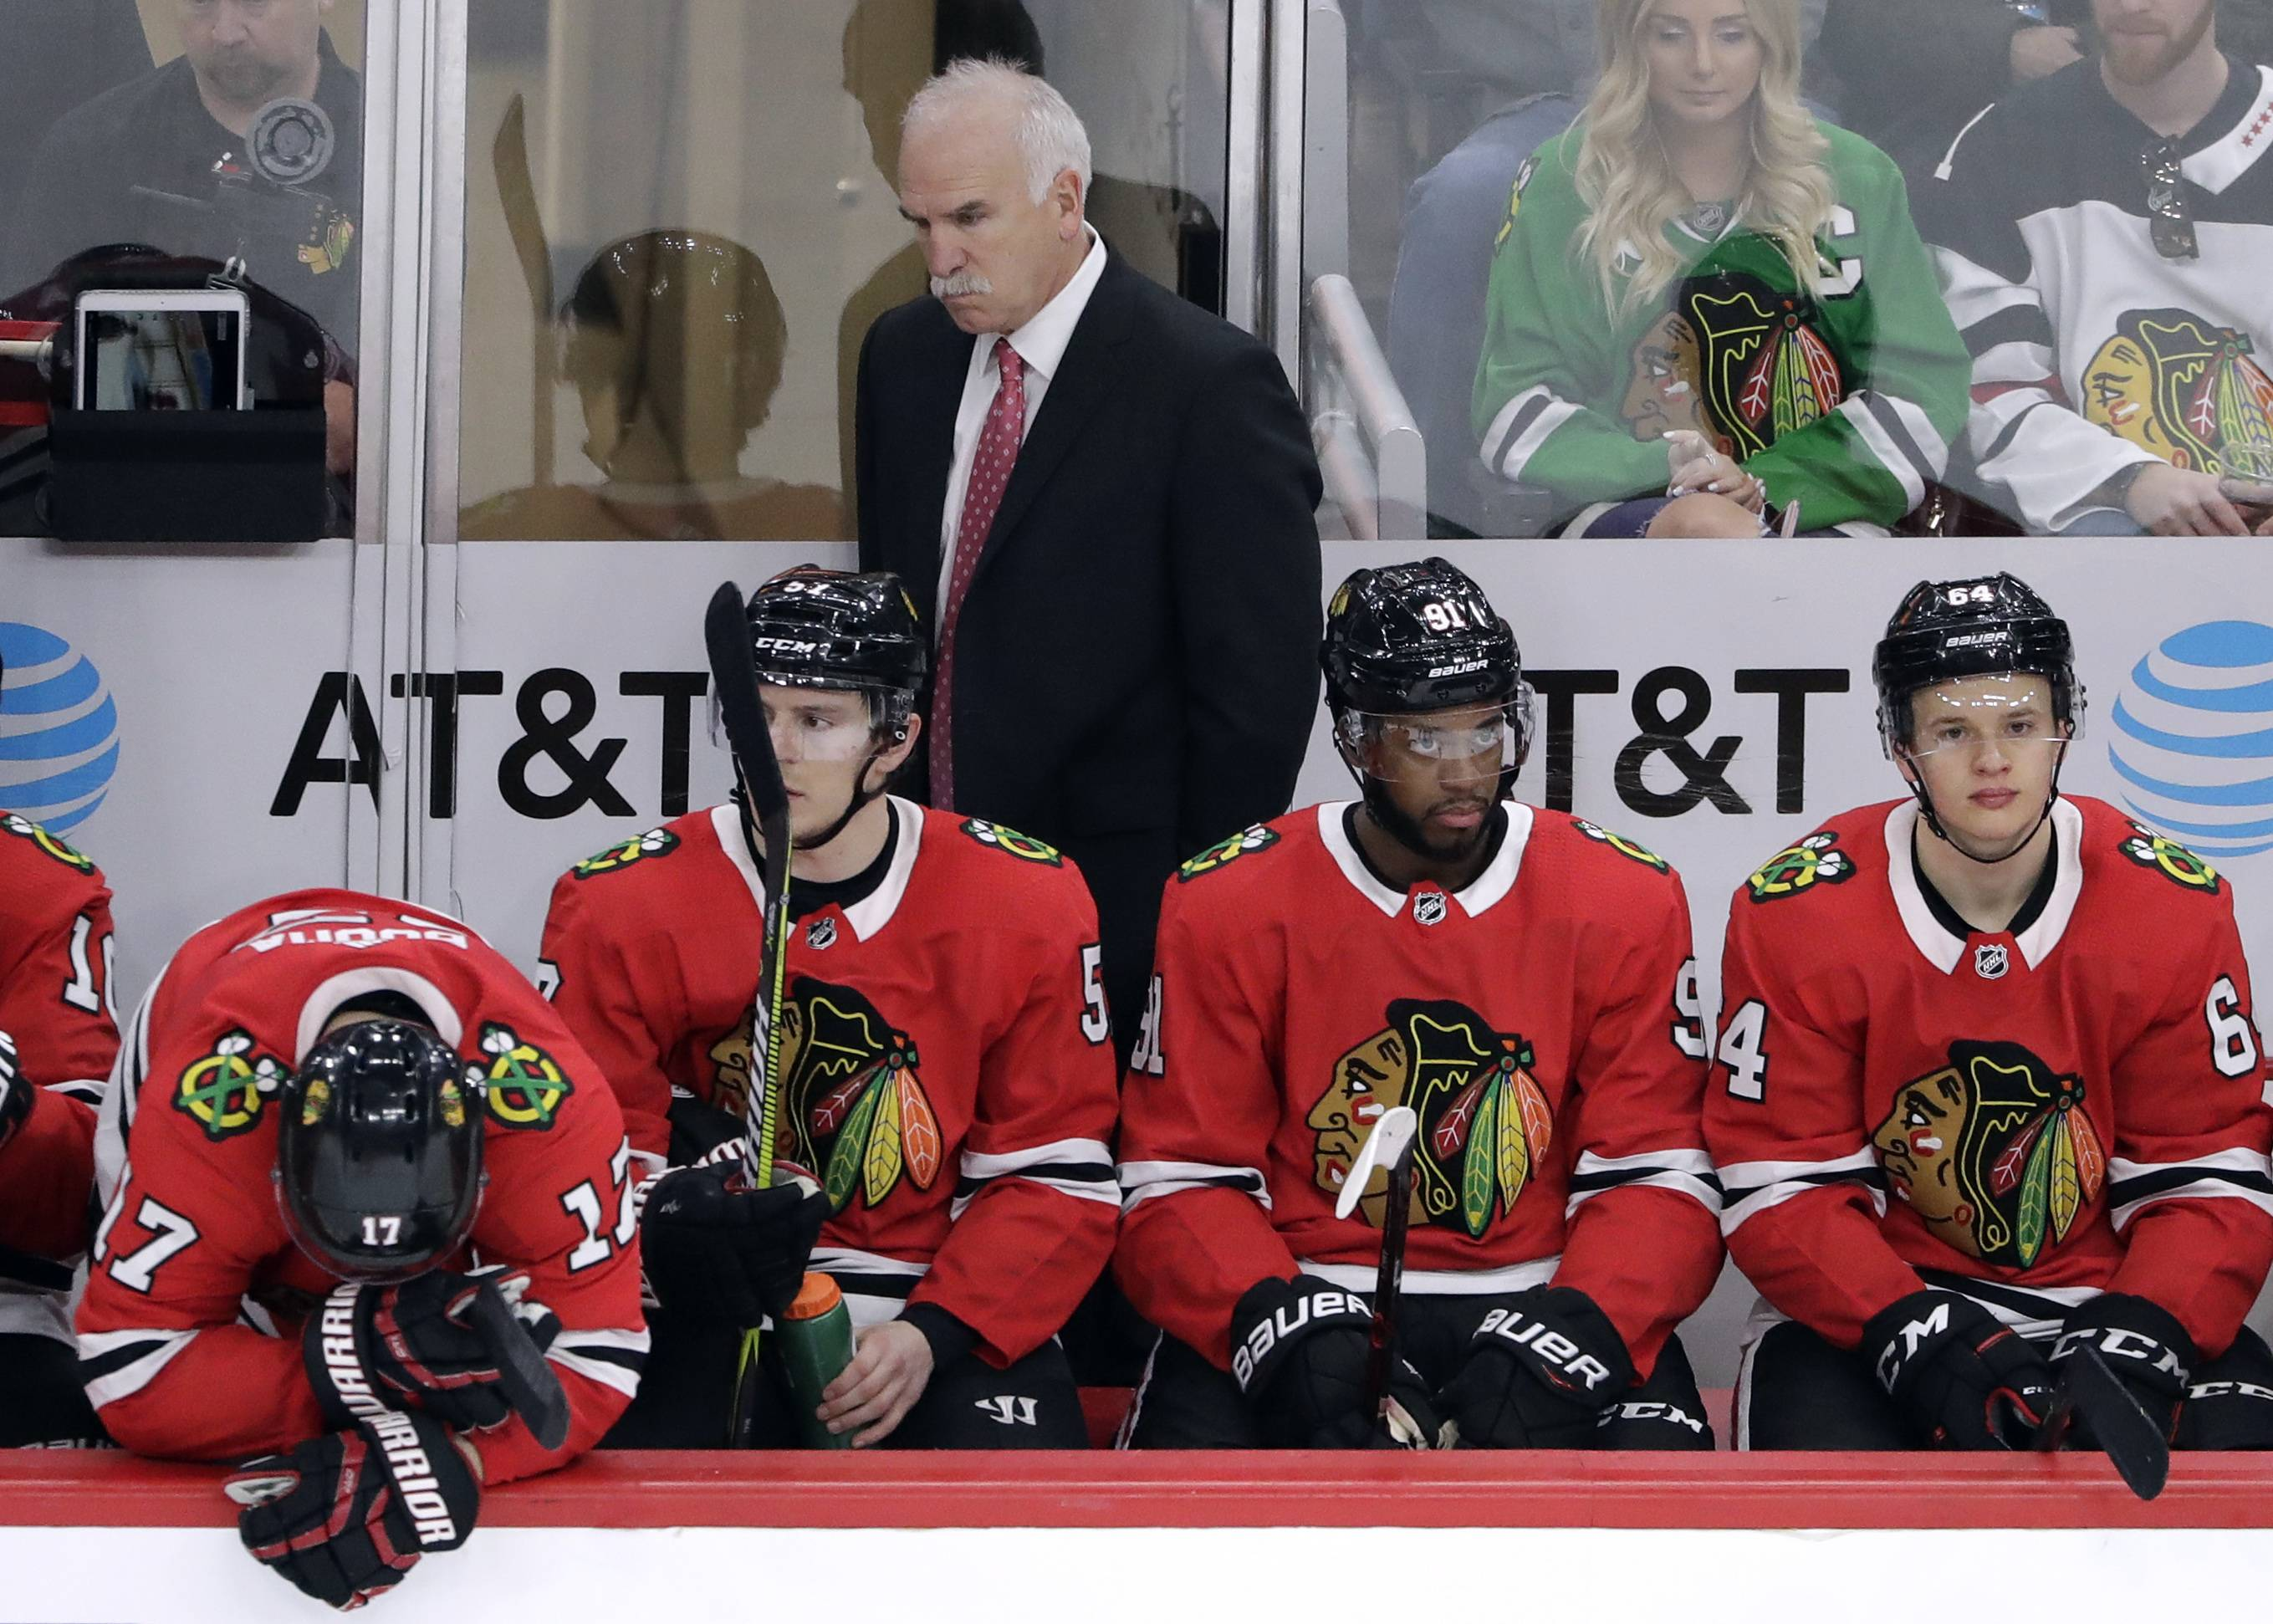 With the Chicago Blackhawks struggling mightily this season, is it time for Joel Quenneville to go? John Dietz says no, adding that the head coach deserves one more shot to right the ship next season.